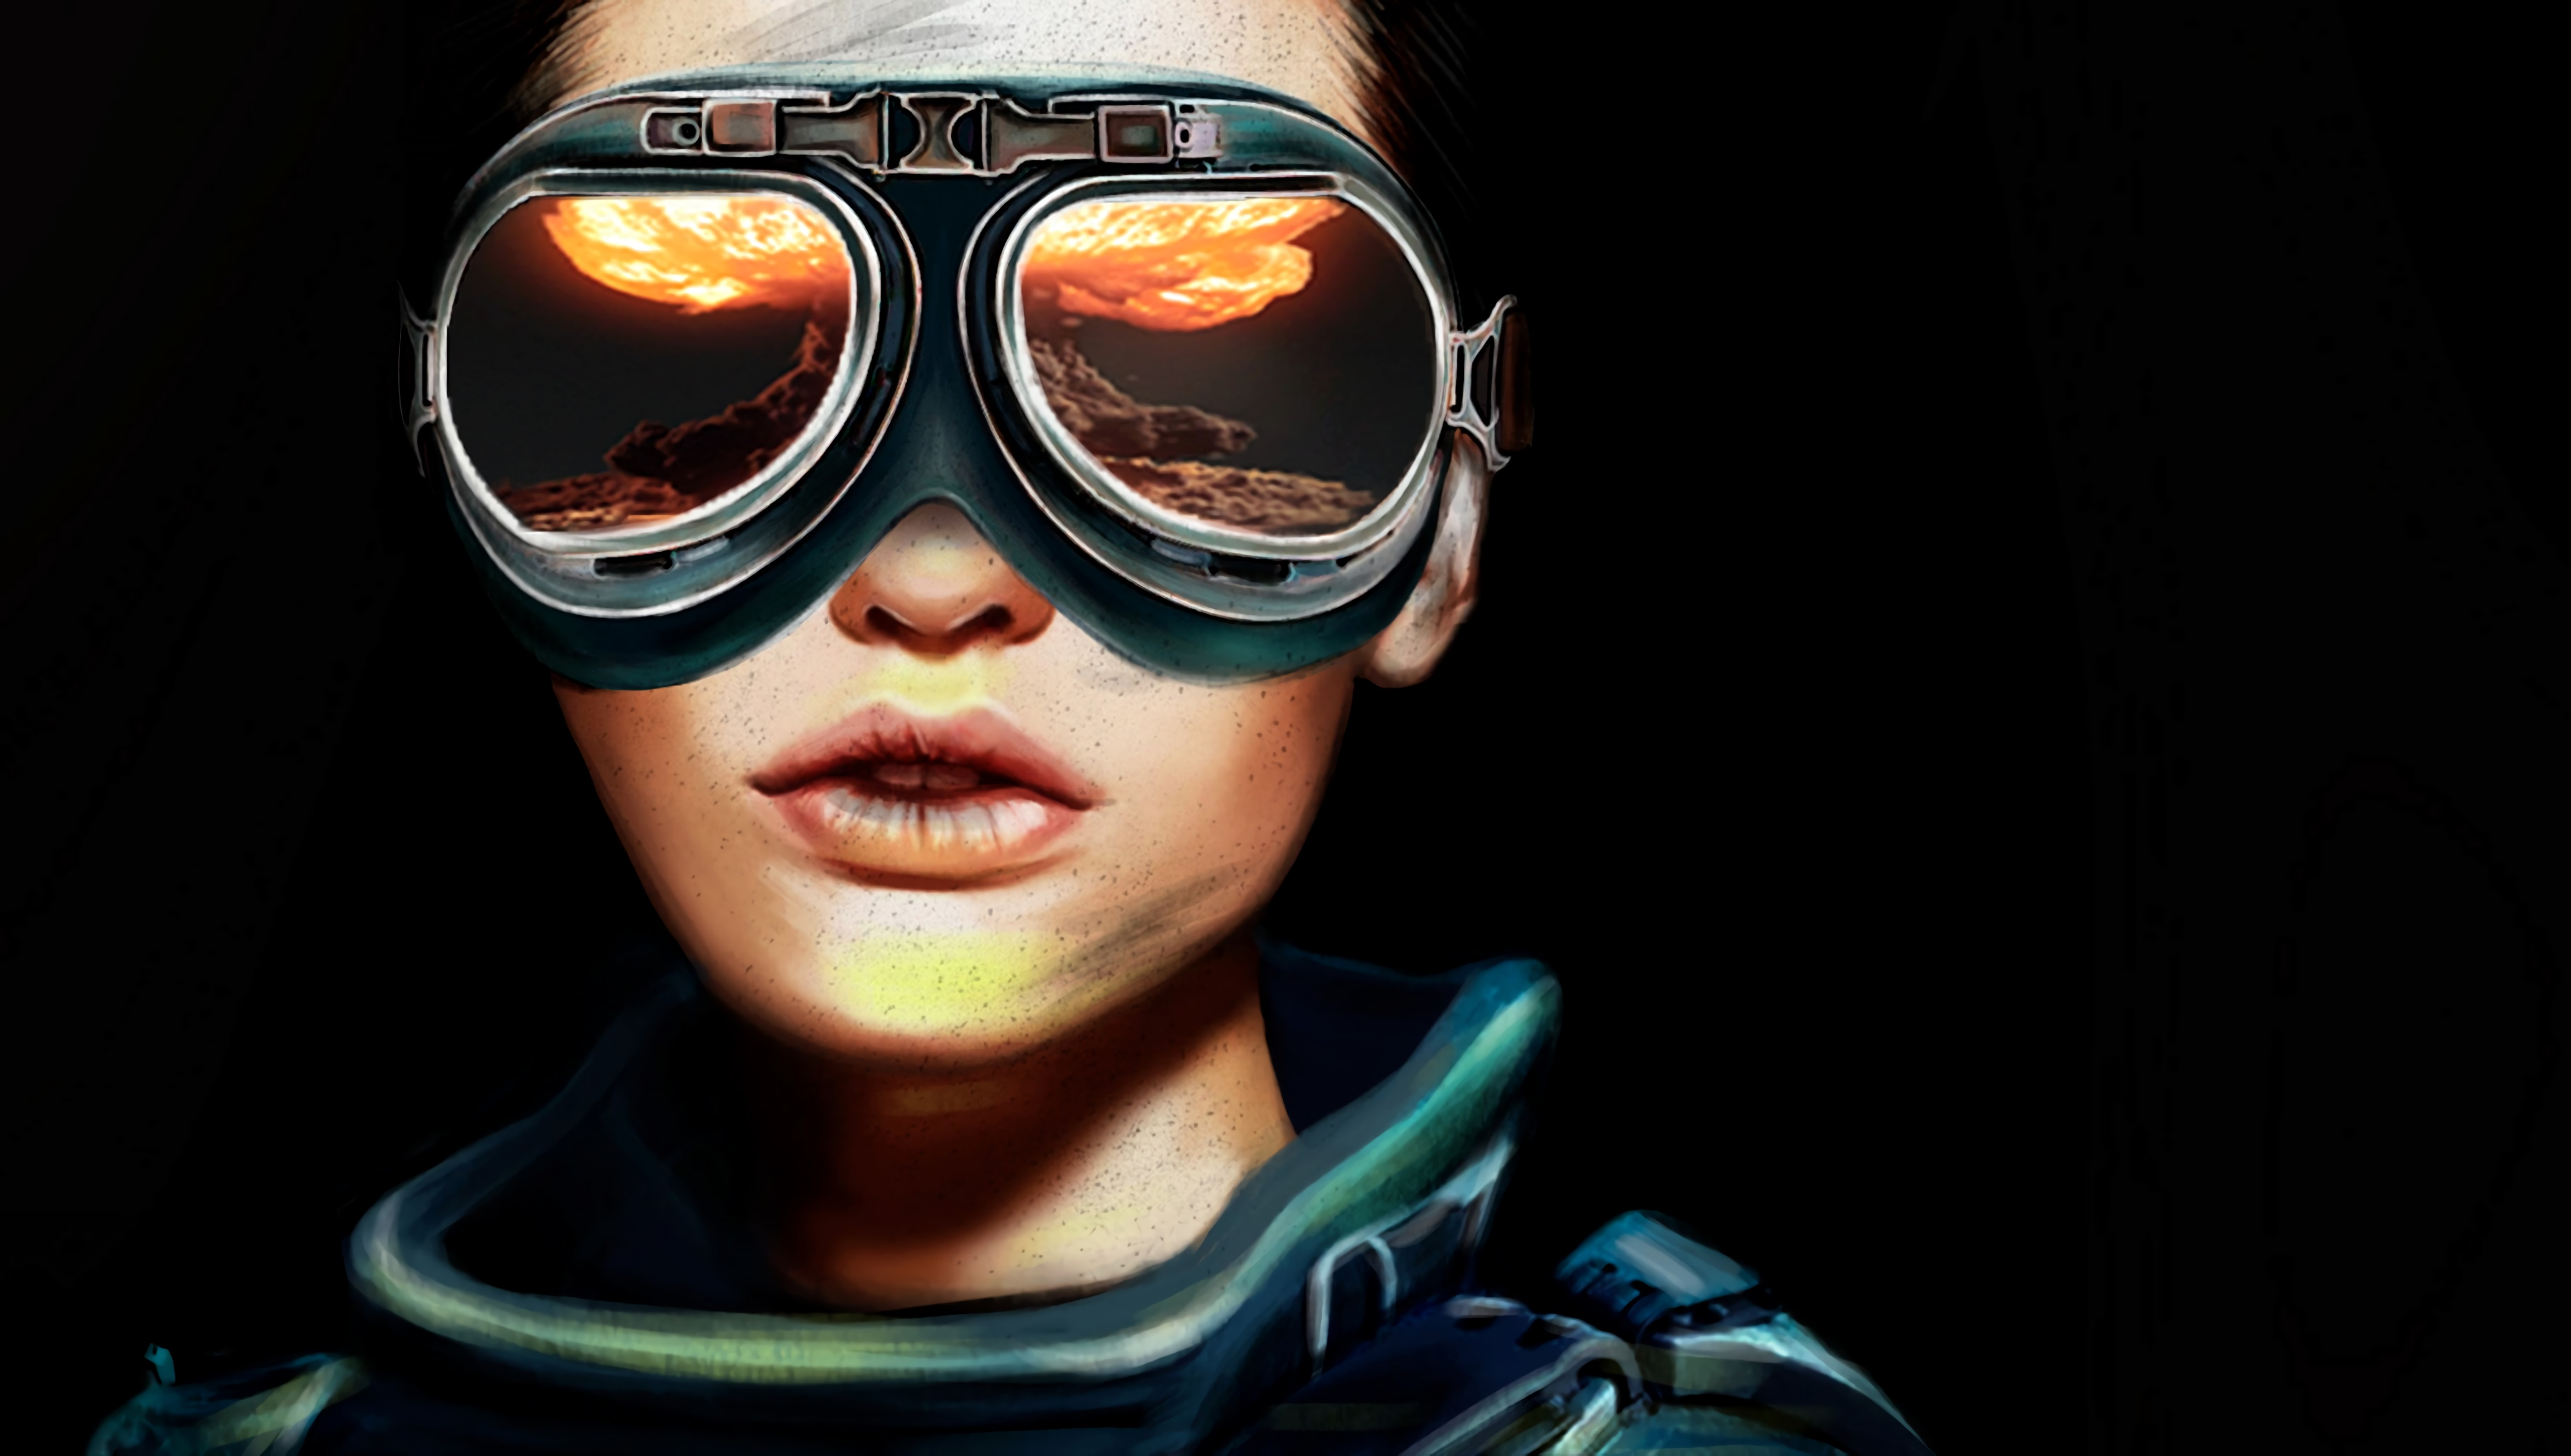 98951 download wallpaper Art, Glasses, Spectacles, Portrait, Aviator, Reflection screensavers and pictures for free